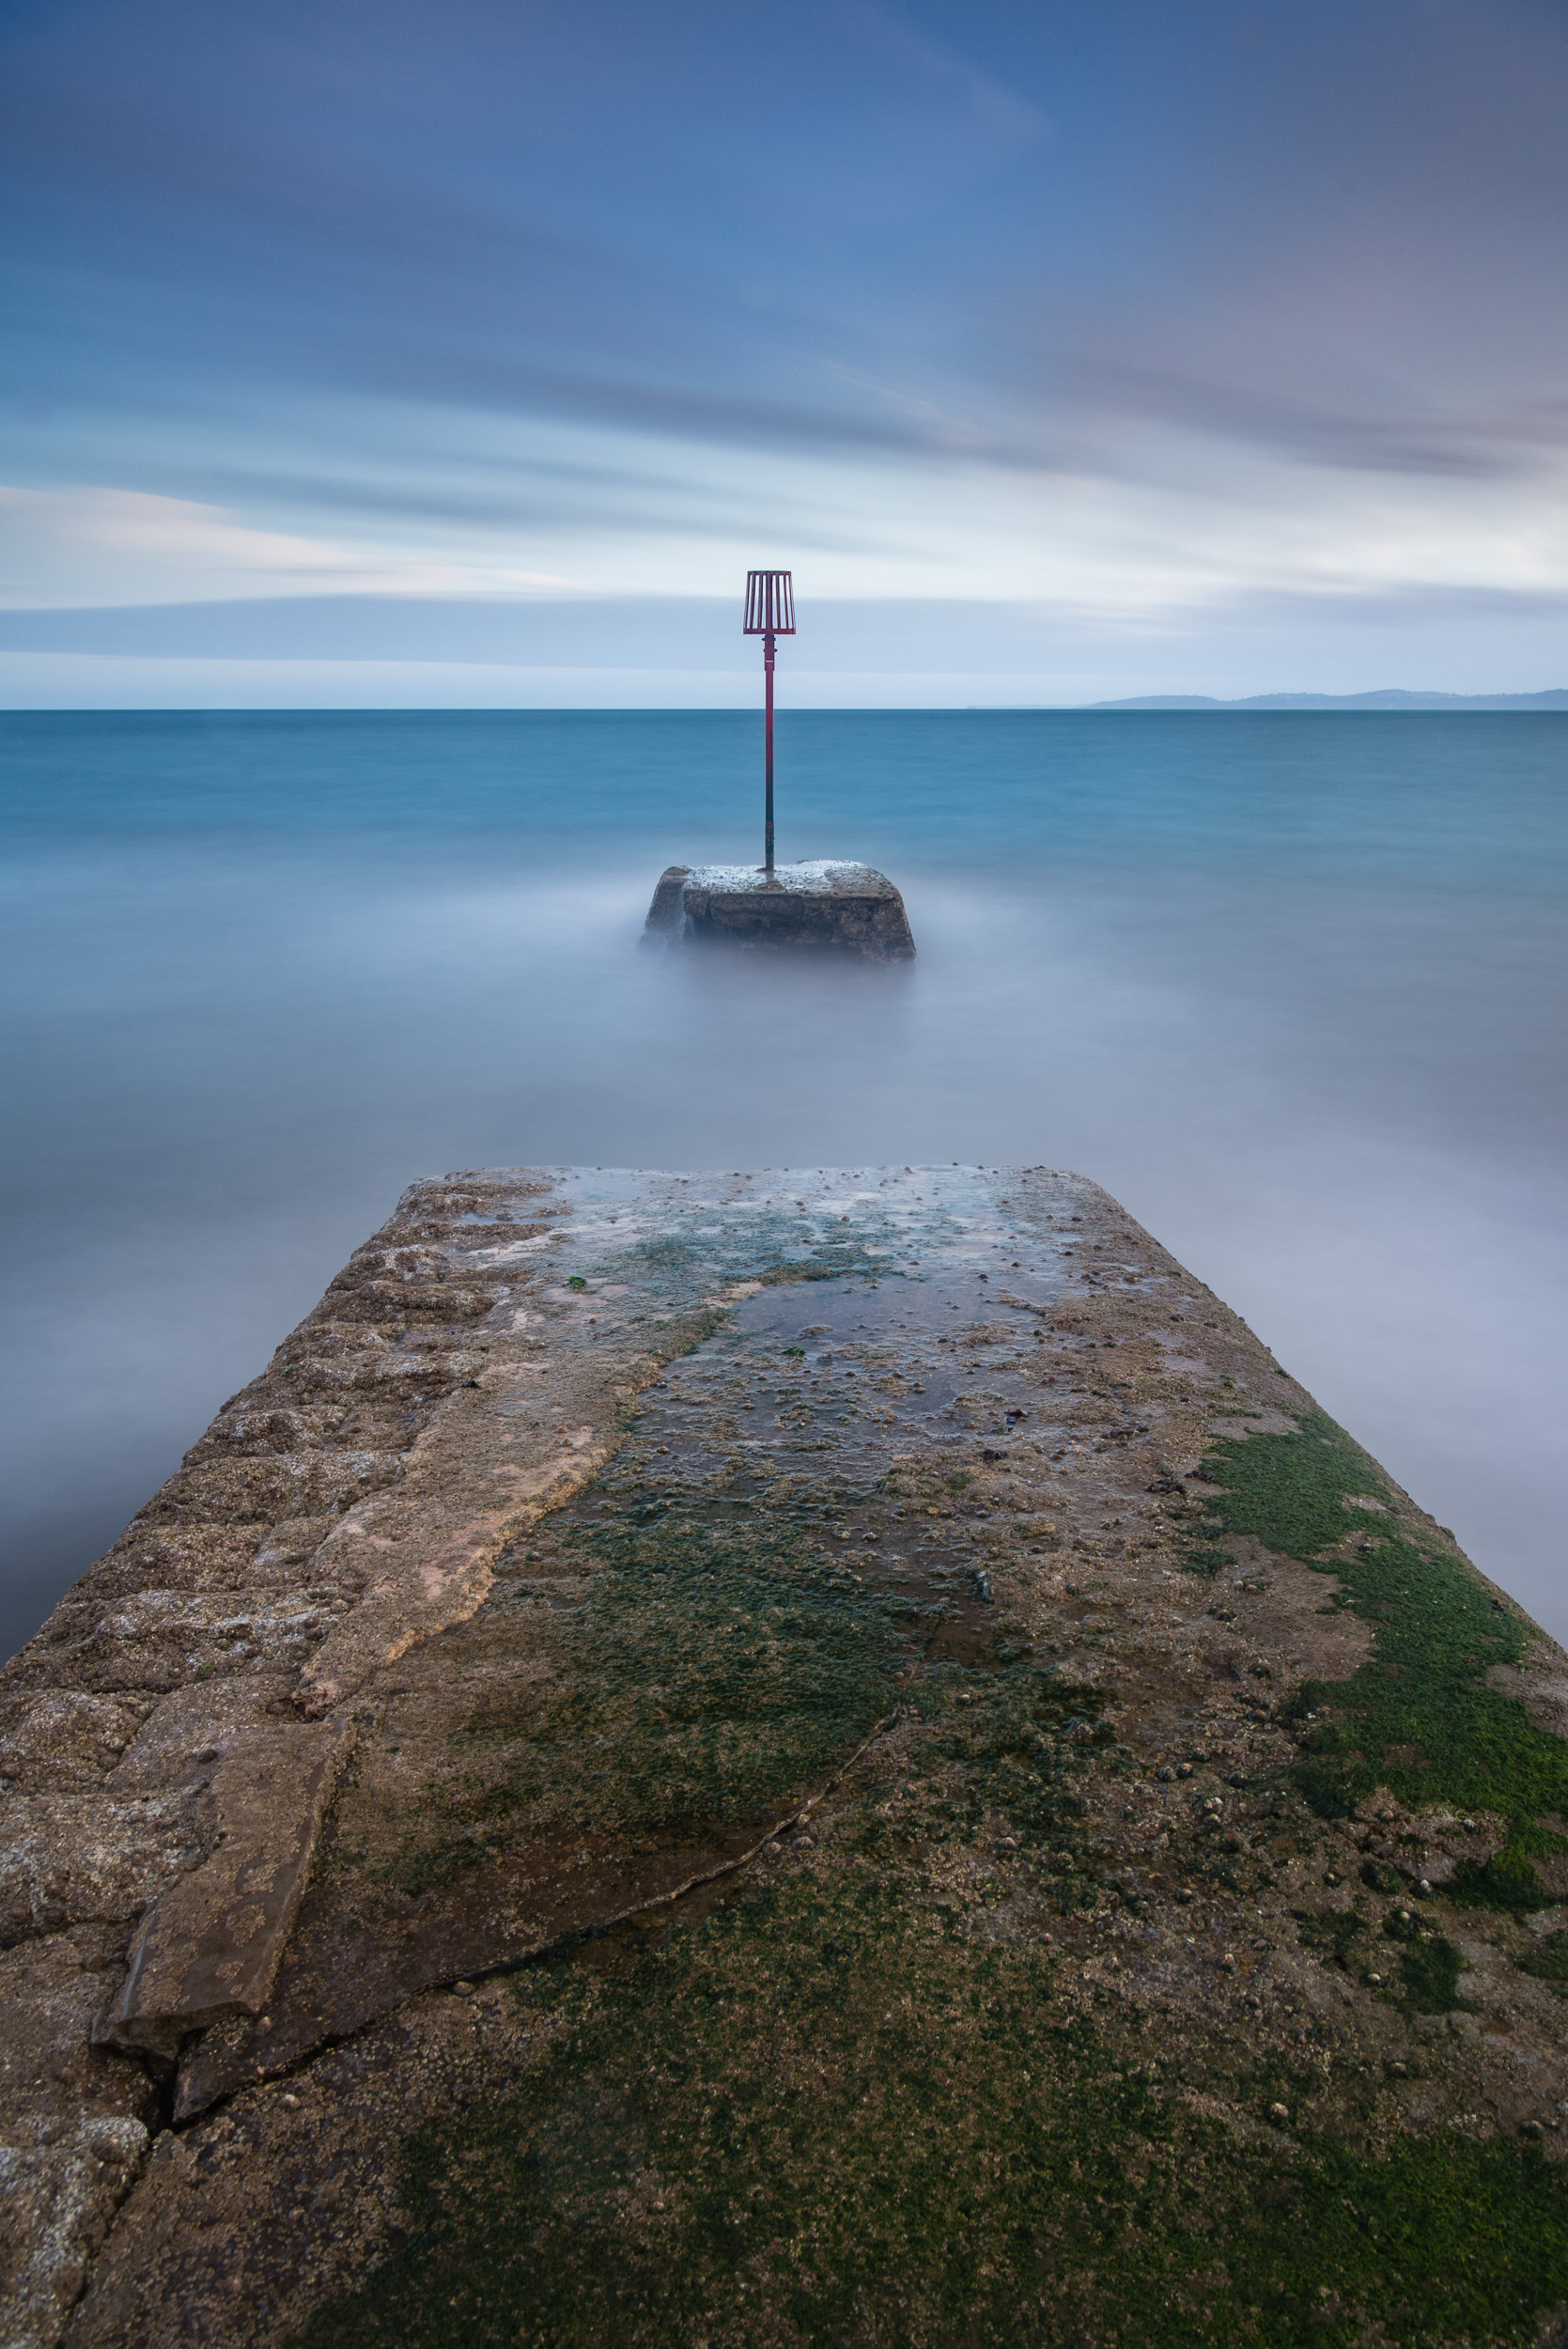 Not as calm as it looks. Nikon D750, Nikon 24-70 f/2.8 VR, 195 secs at f/11, Lee Filters ND Grad, Polariser, and Big Stopper. Processed in Lightroom CC.